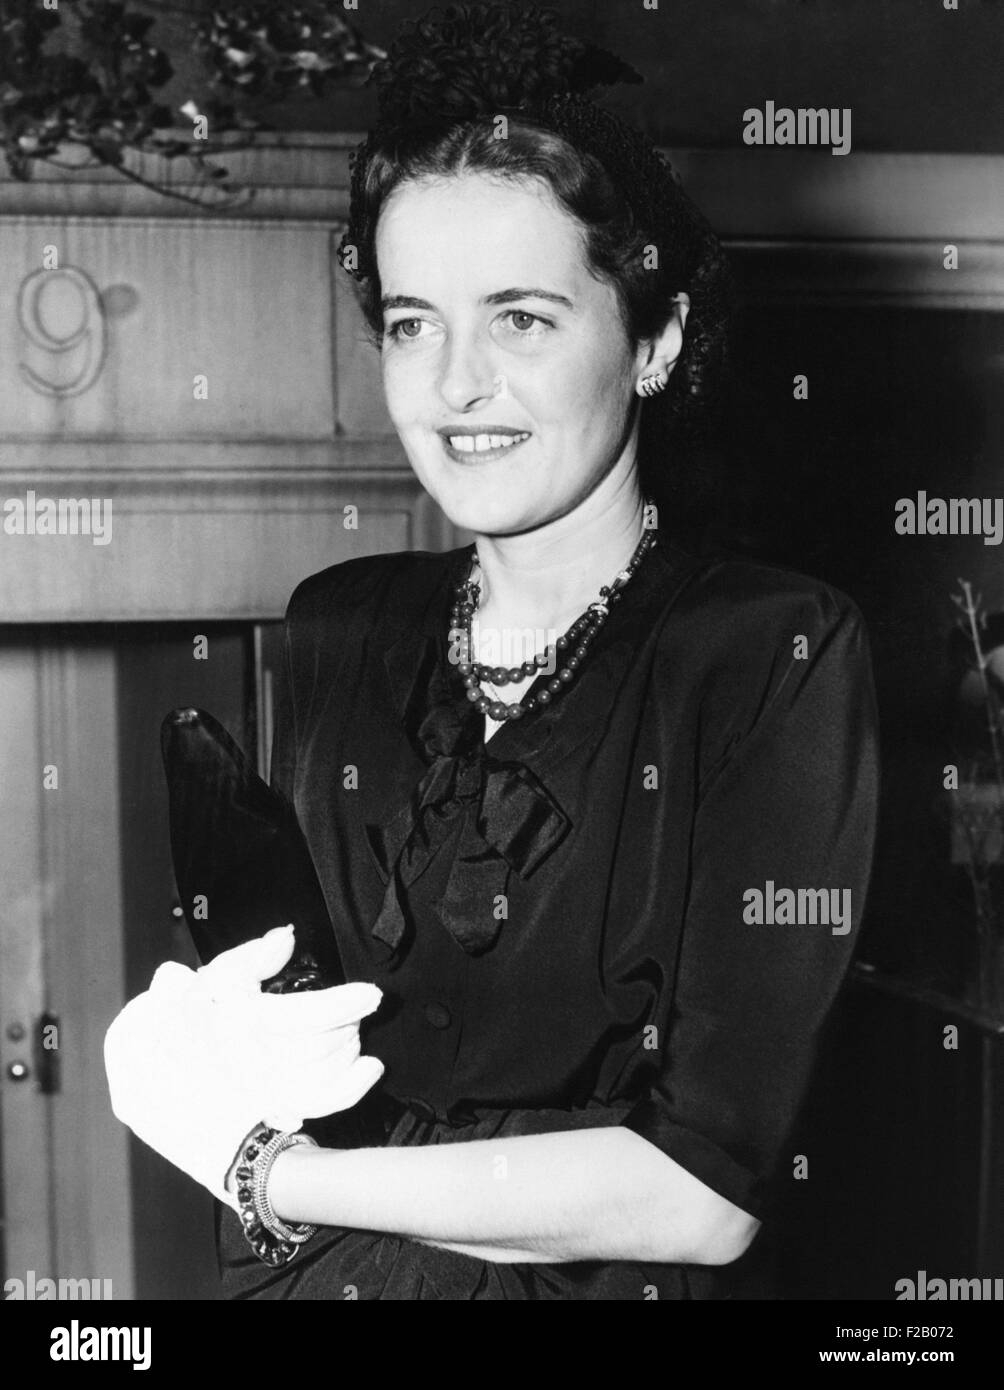 Louise Black and White Stock s & Alamy